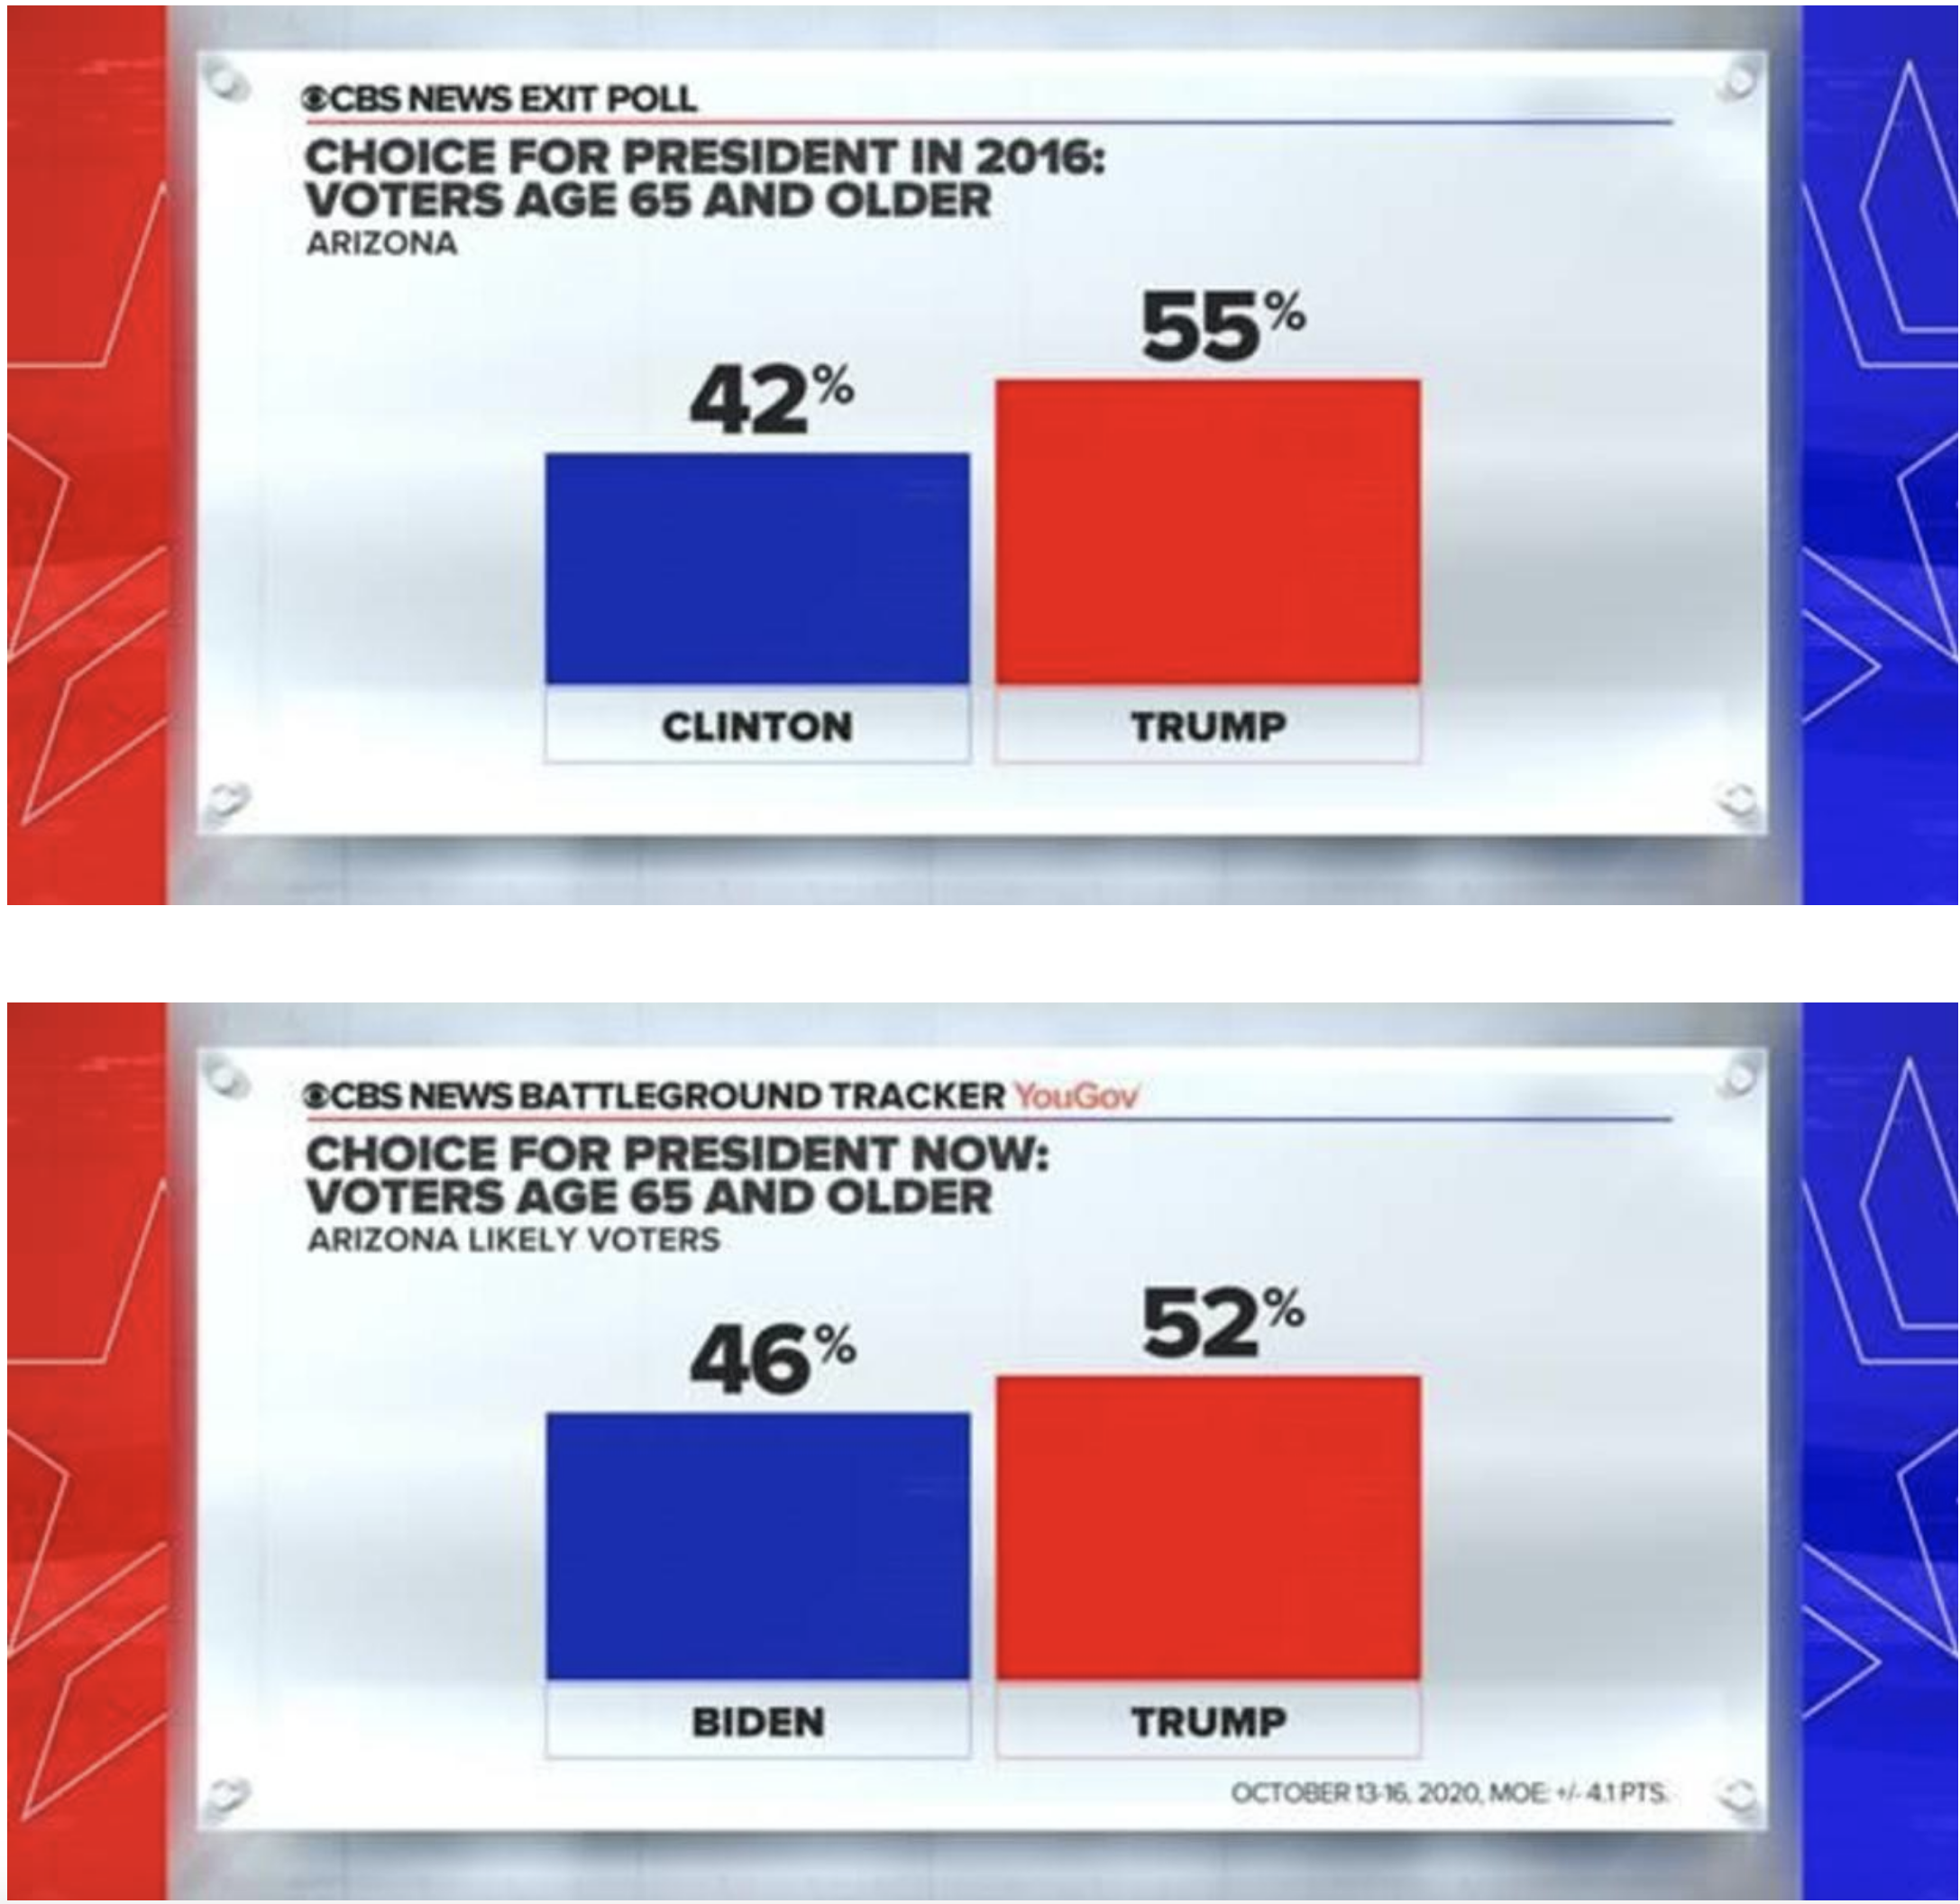 Screen-Shot-2020-10-18-at-11.51.32-AM Updated 'Swing State' Poll Results Show Dramatic Double-Digit Gap Election 2020 Featured Politics Polls Top Stories